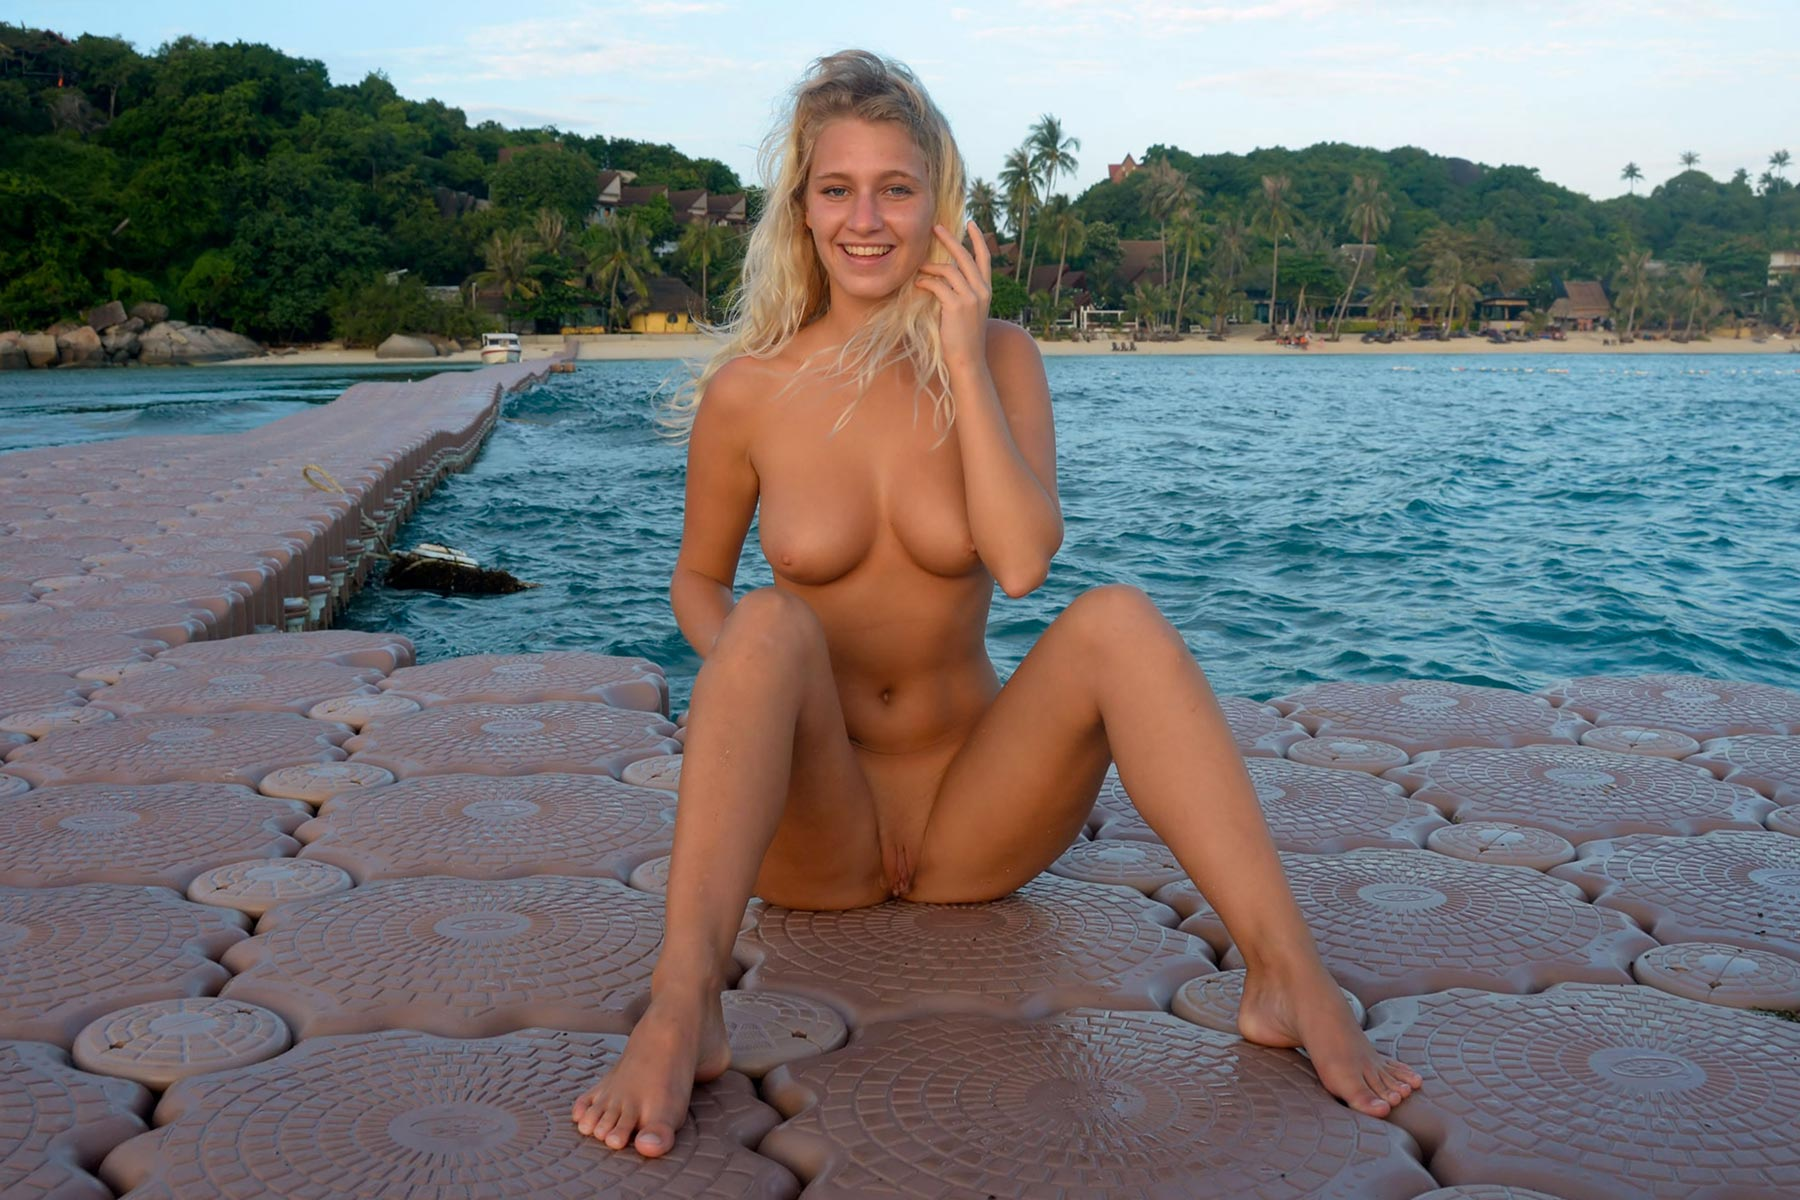 tereza-blonde-thailand-holiday-public-naked-seaside-21